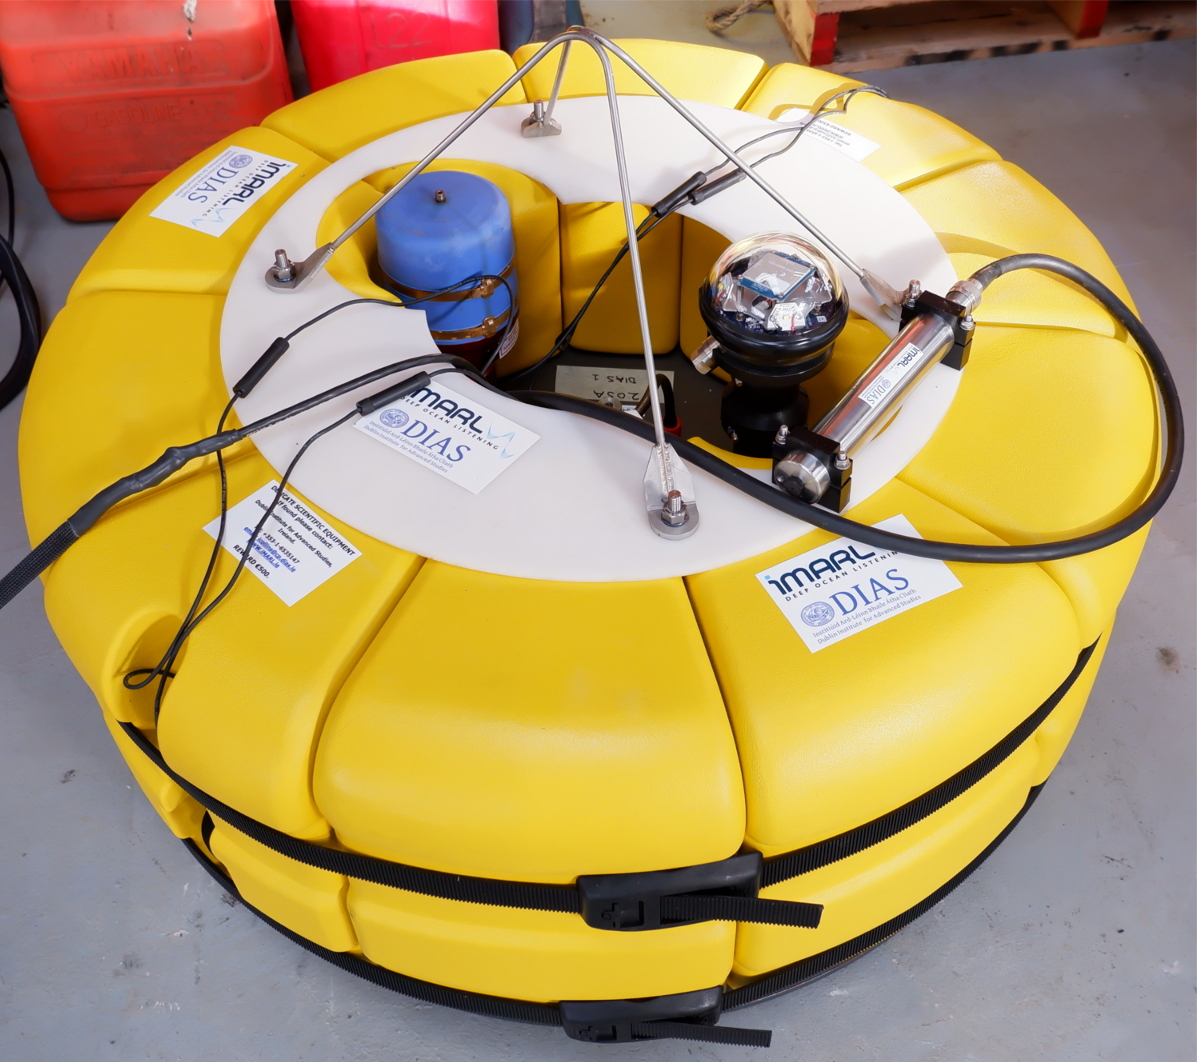 test Twitter Media - iMARL (Insitu Marine Laboratory for Geosystems Research) is a network of various types of ocean floor located sensors including Ocean Bottom Seismographs (OBS), broadband acoustic sensors, and sensors for measuring absolute water pressure & temperature at the ocean floor. (2/3) https://t.co/mEhWbd0hQz